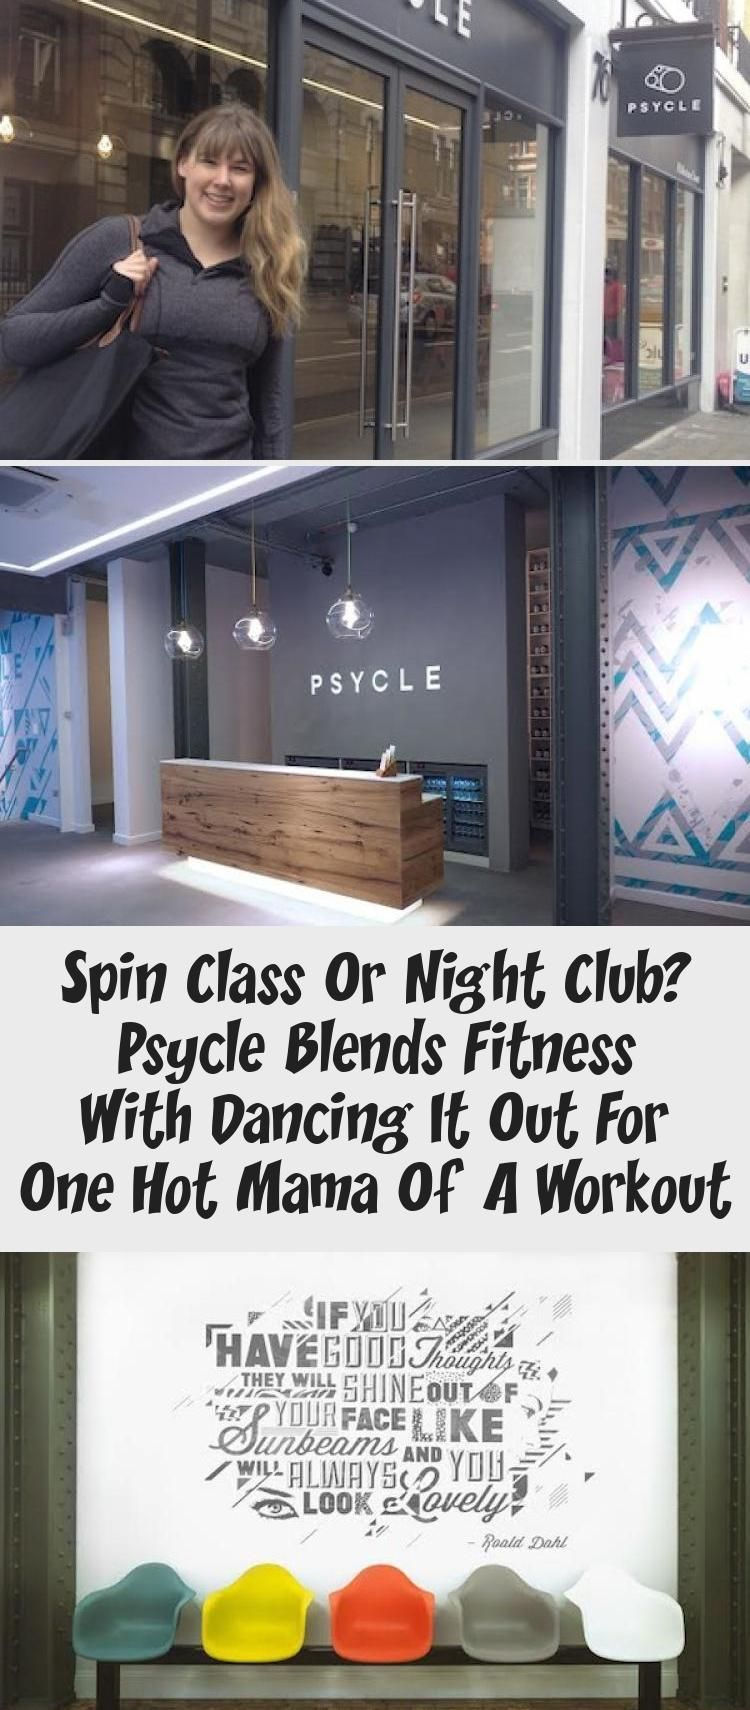 soul cycle interior - Google Search - Fitness is life, fitness is BAE! ♥ Tap t... - #cycle #fitness...